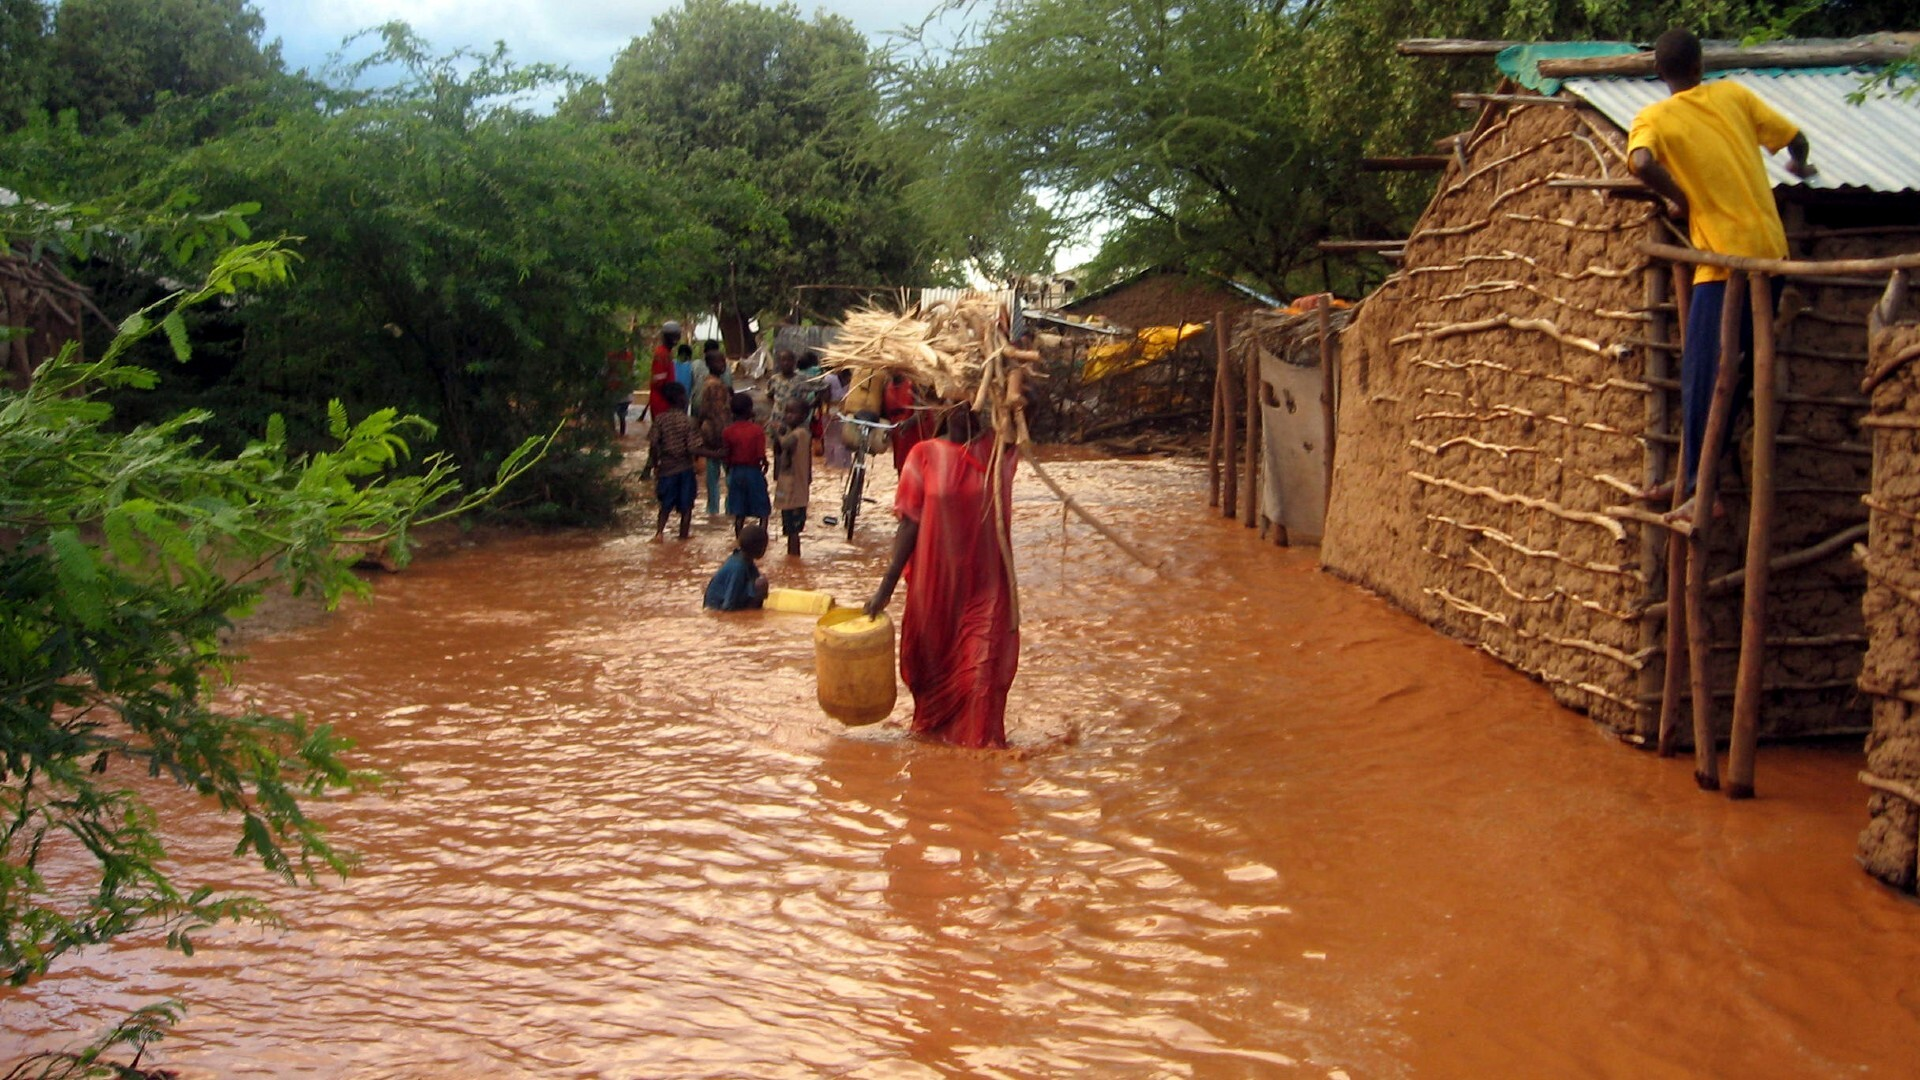 Kenya floods: More rain expected in region